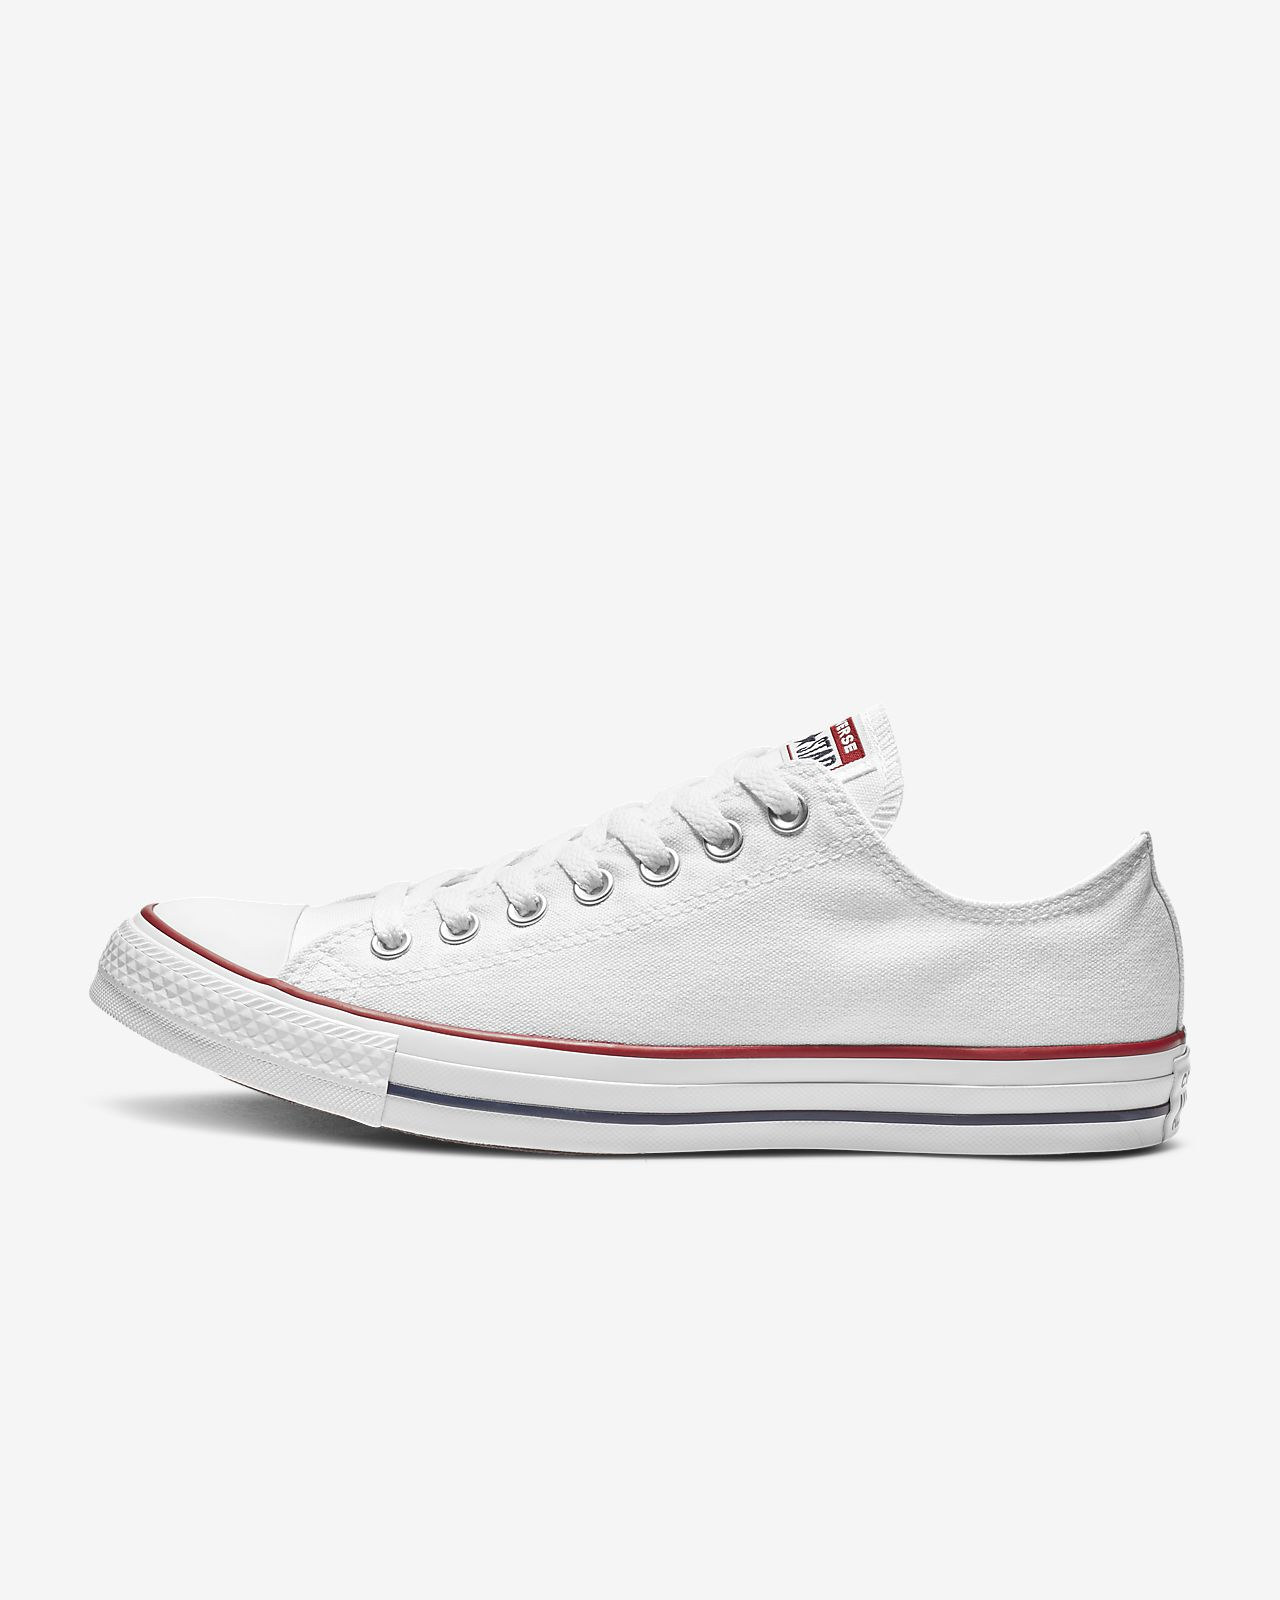 b3484c9046397 Converse Chuck Taylor All Star Low Top Unisex Shoe